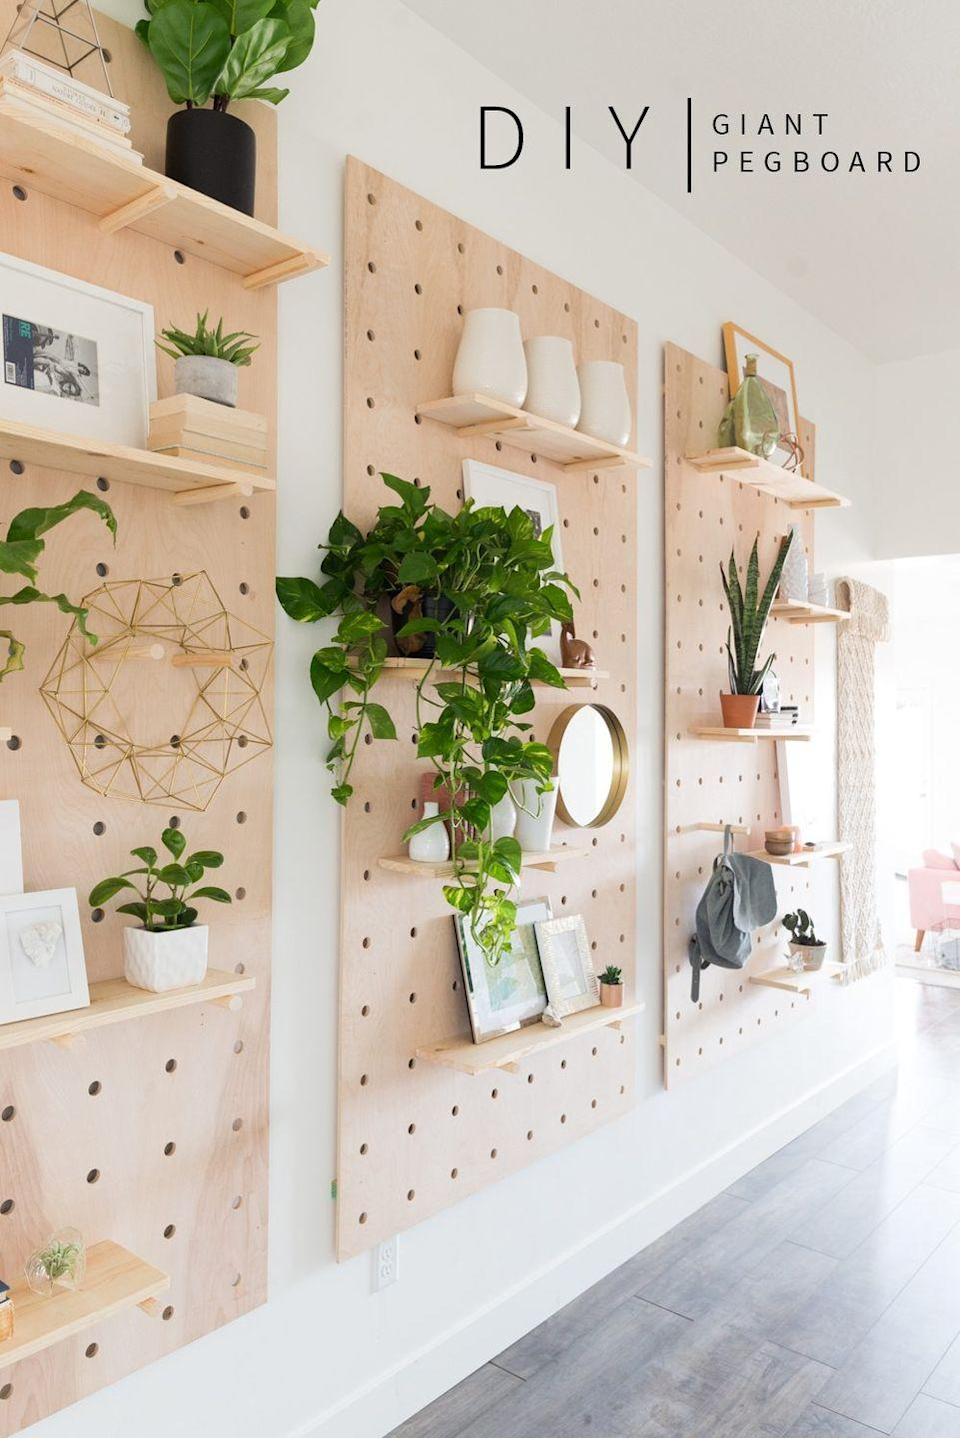 "<p>If add-on shelves feel too messy and cluttered for your walls, DIY pegboards. You'll gain additional space for vases, plants, mirrors, frames, etc., and warm up your space with the giant wooden wall covering.</p><p>Get the tutorial at <a href=""https://vintagerevivals.com/2017/01/giant-pegboard-diy"" rel=""nofollow noopener"" target=""_blank"" data-ylk=""slk:Vintage Revivals"" class=""link rapid-noclick-resp"">Vintage Revivals</a>.</p>"